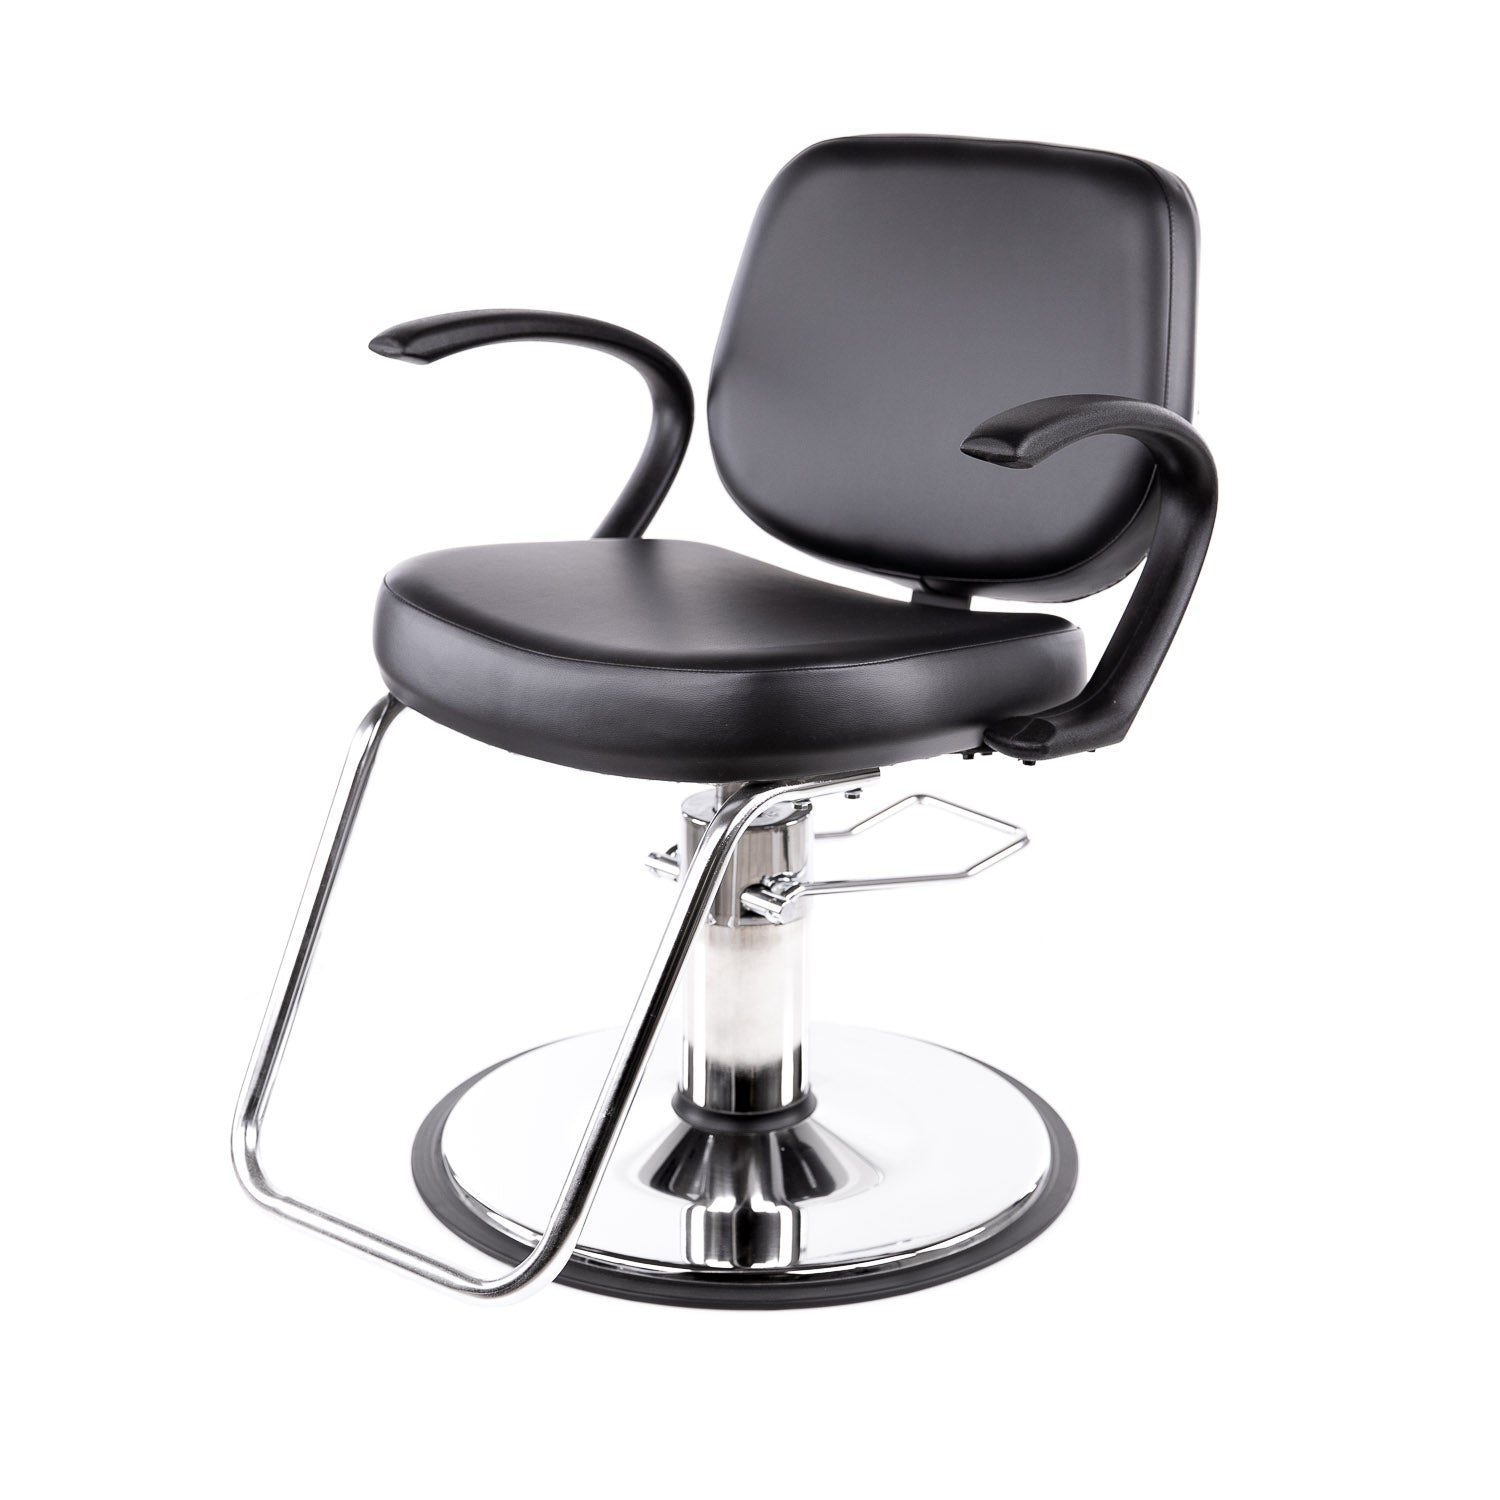 Massey Styling Chair - Collins